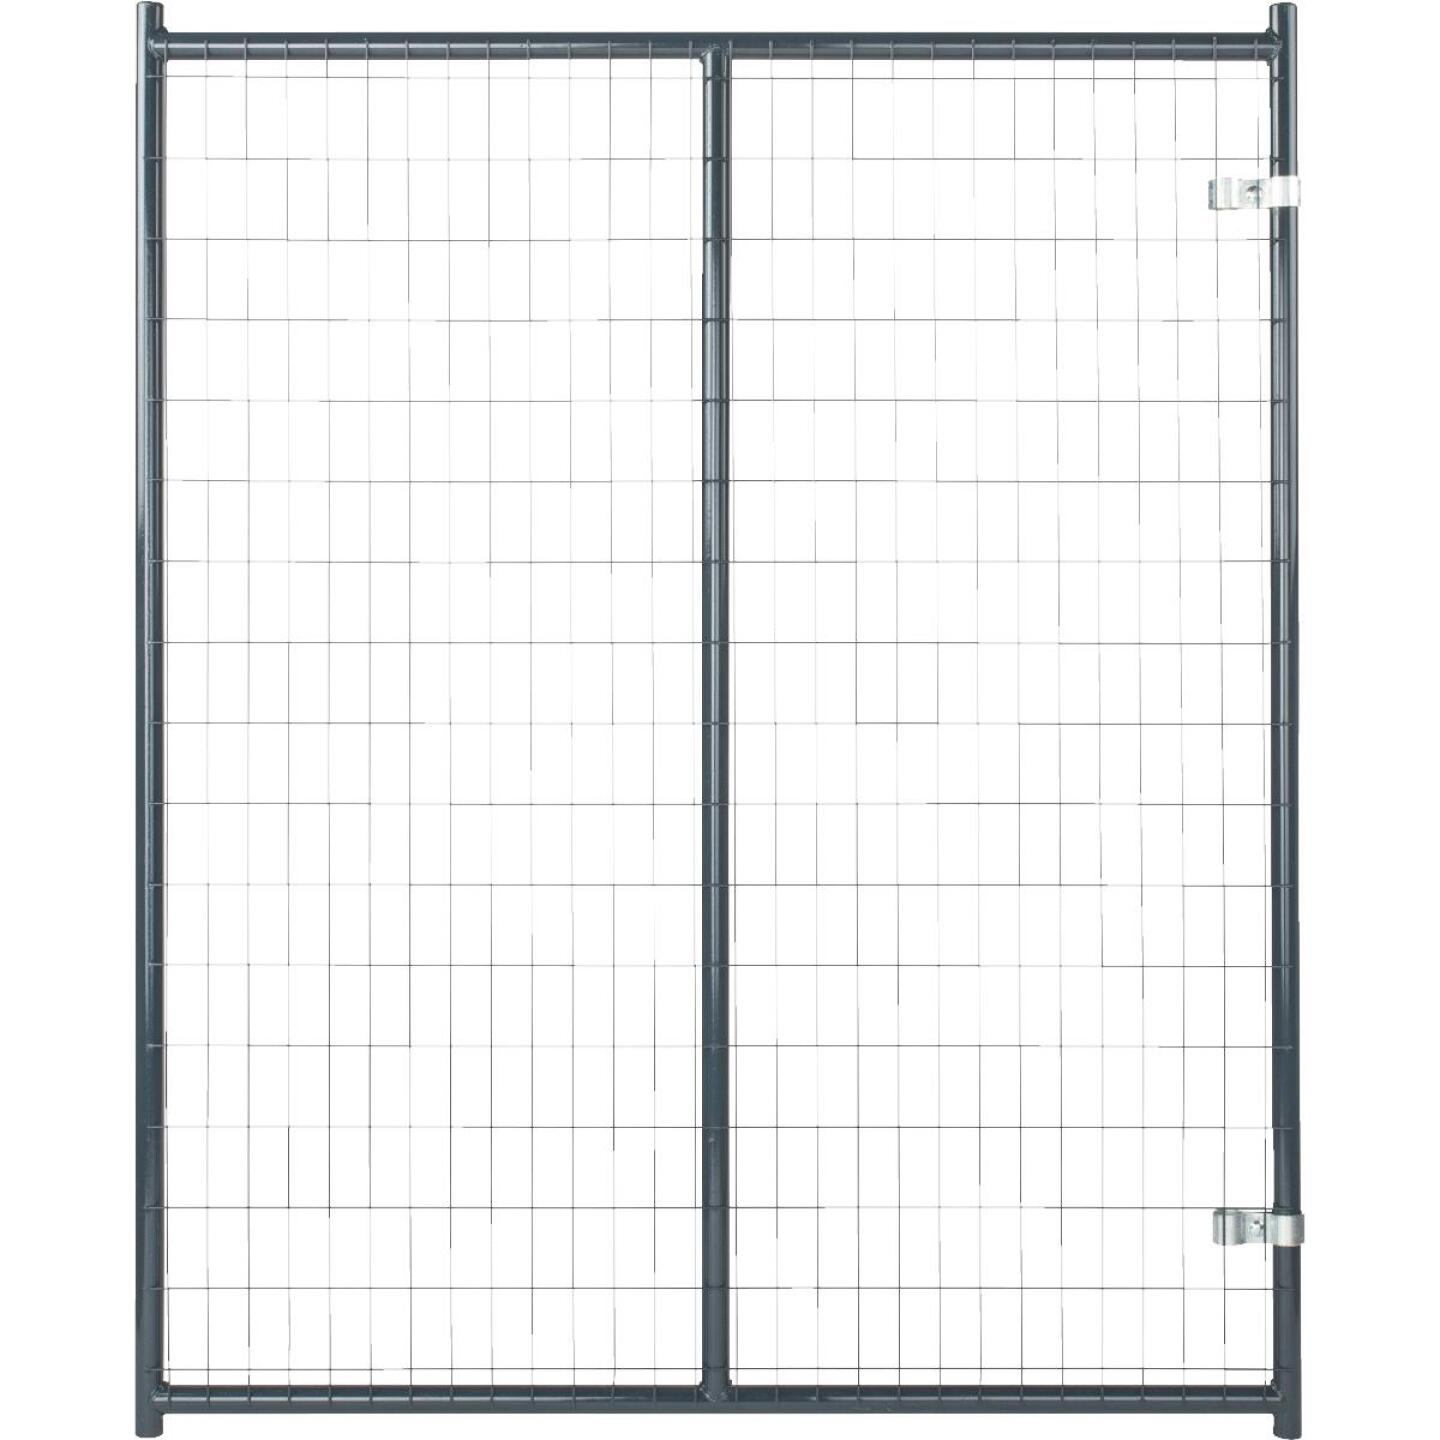 Tarter 5 Ft. W. x 6 Ft. H. Steel & Mesh Wire Dog Kennel Panel Image 1